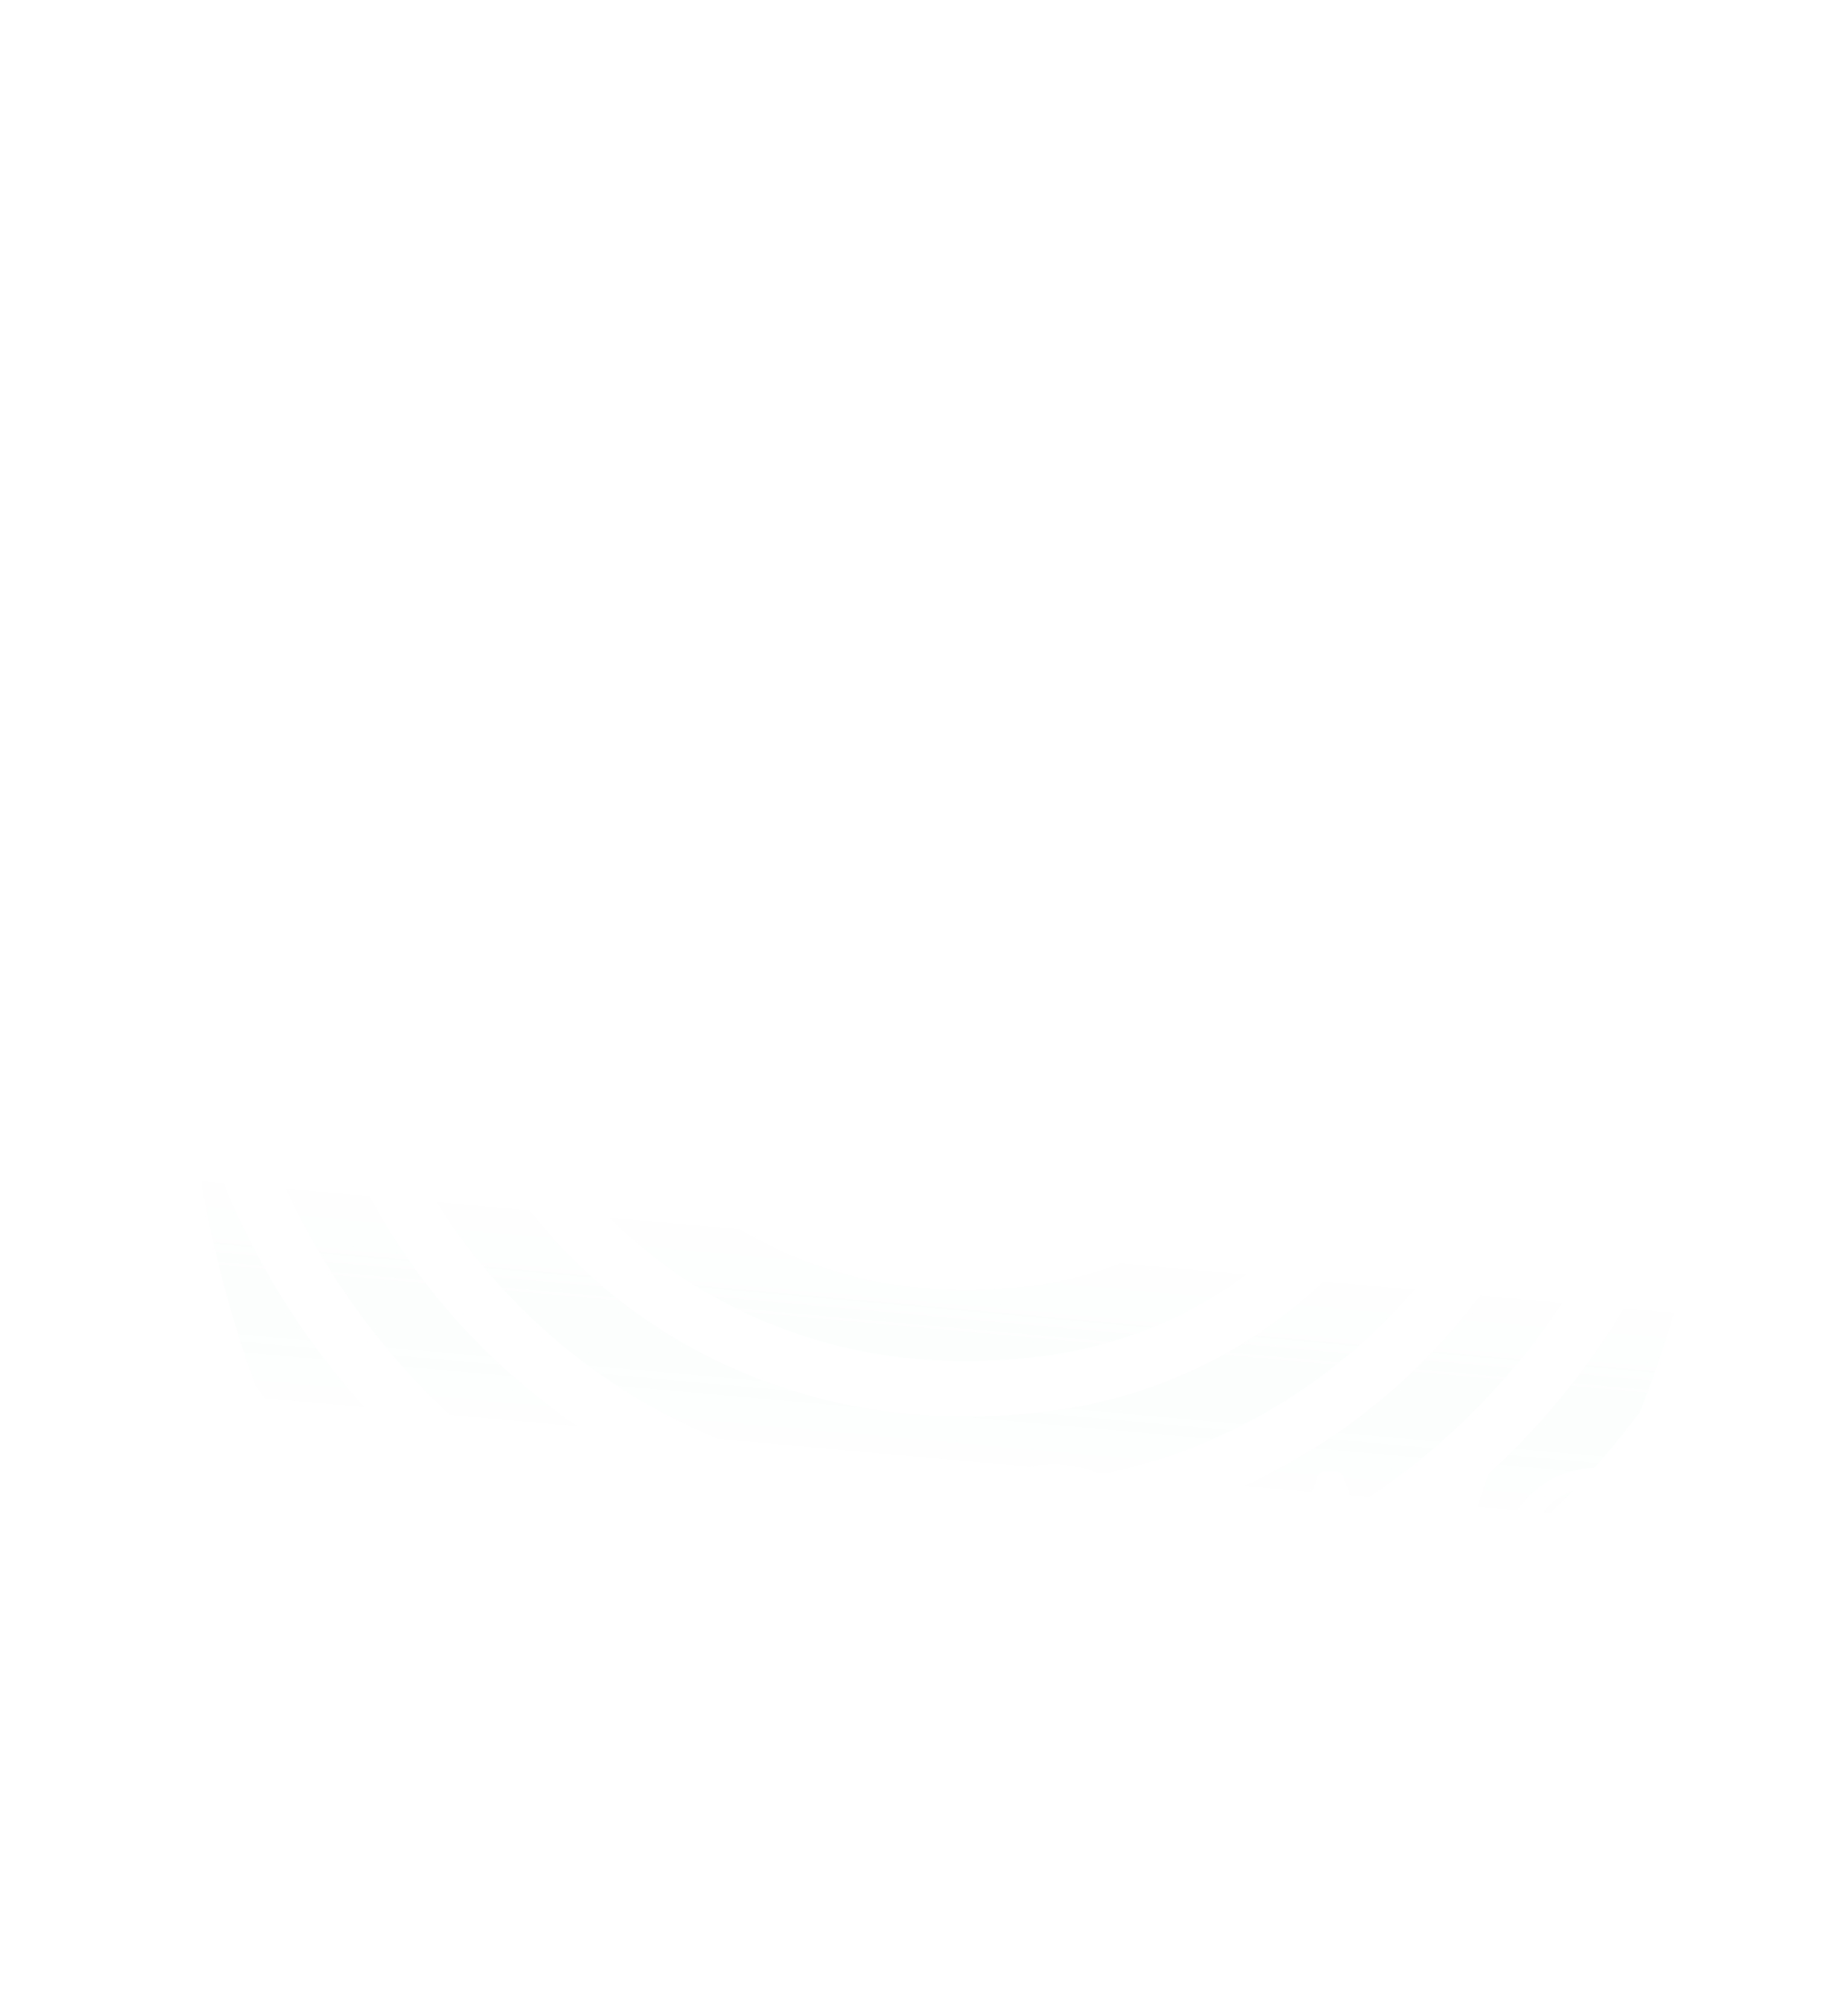 Zenpower